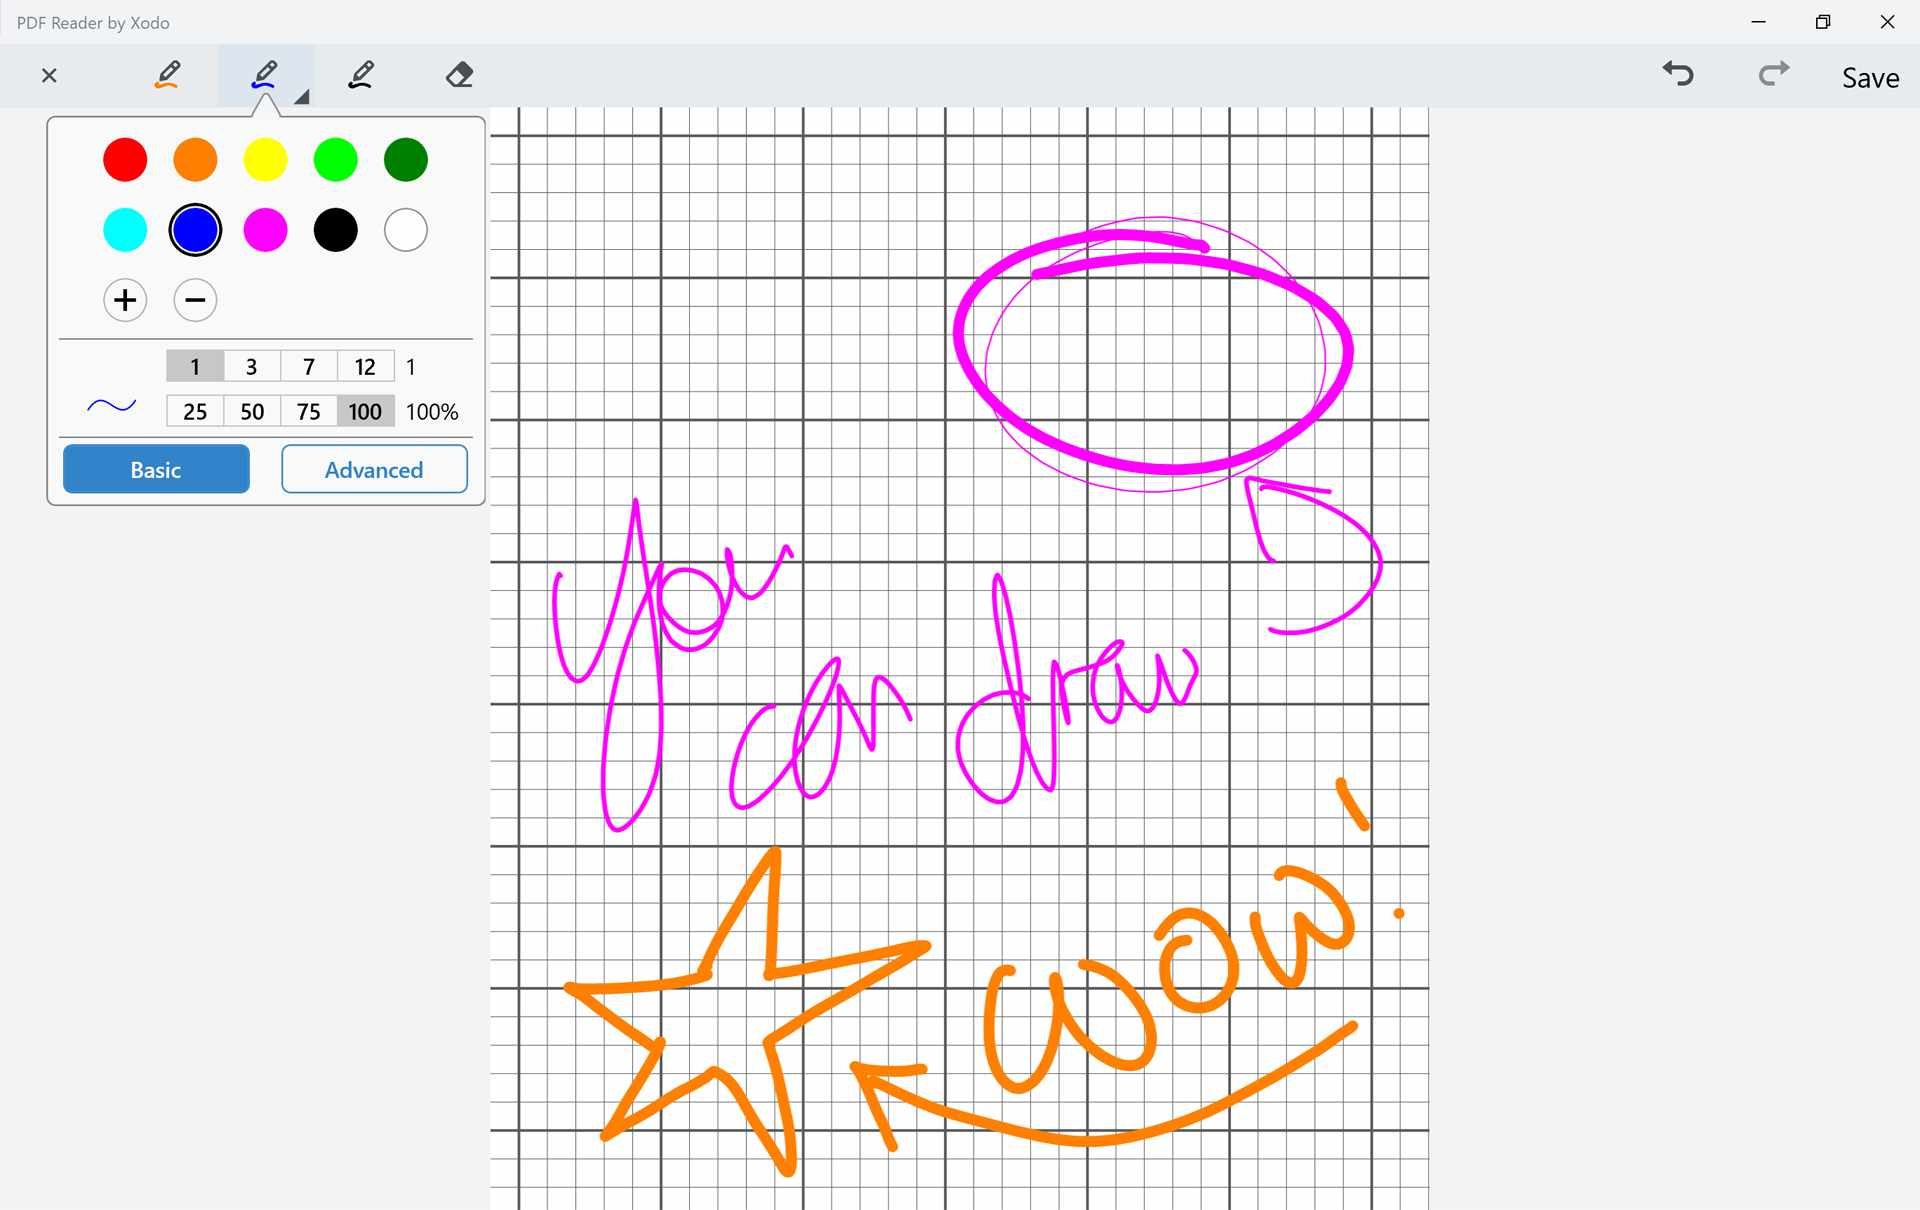 PDF Reader by Xodo Surface Pro drawing app.